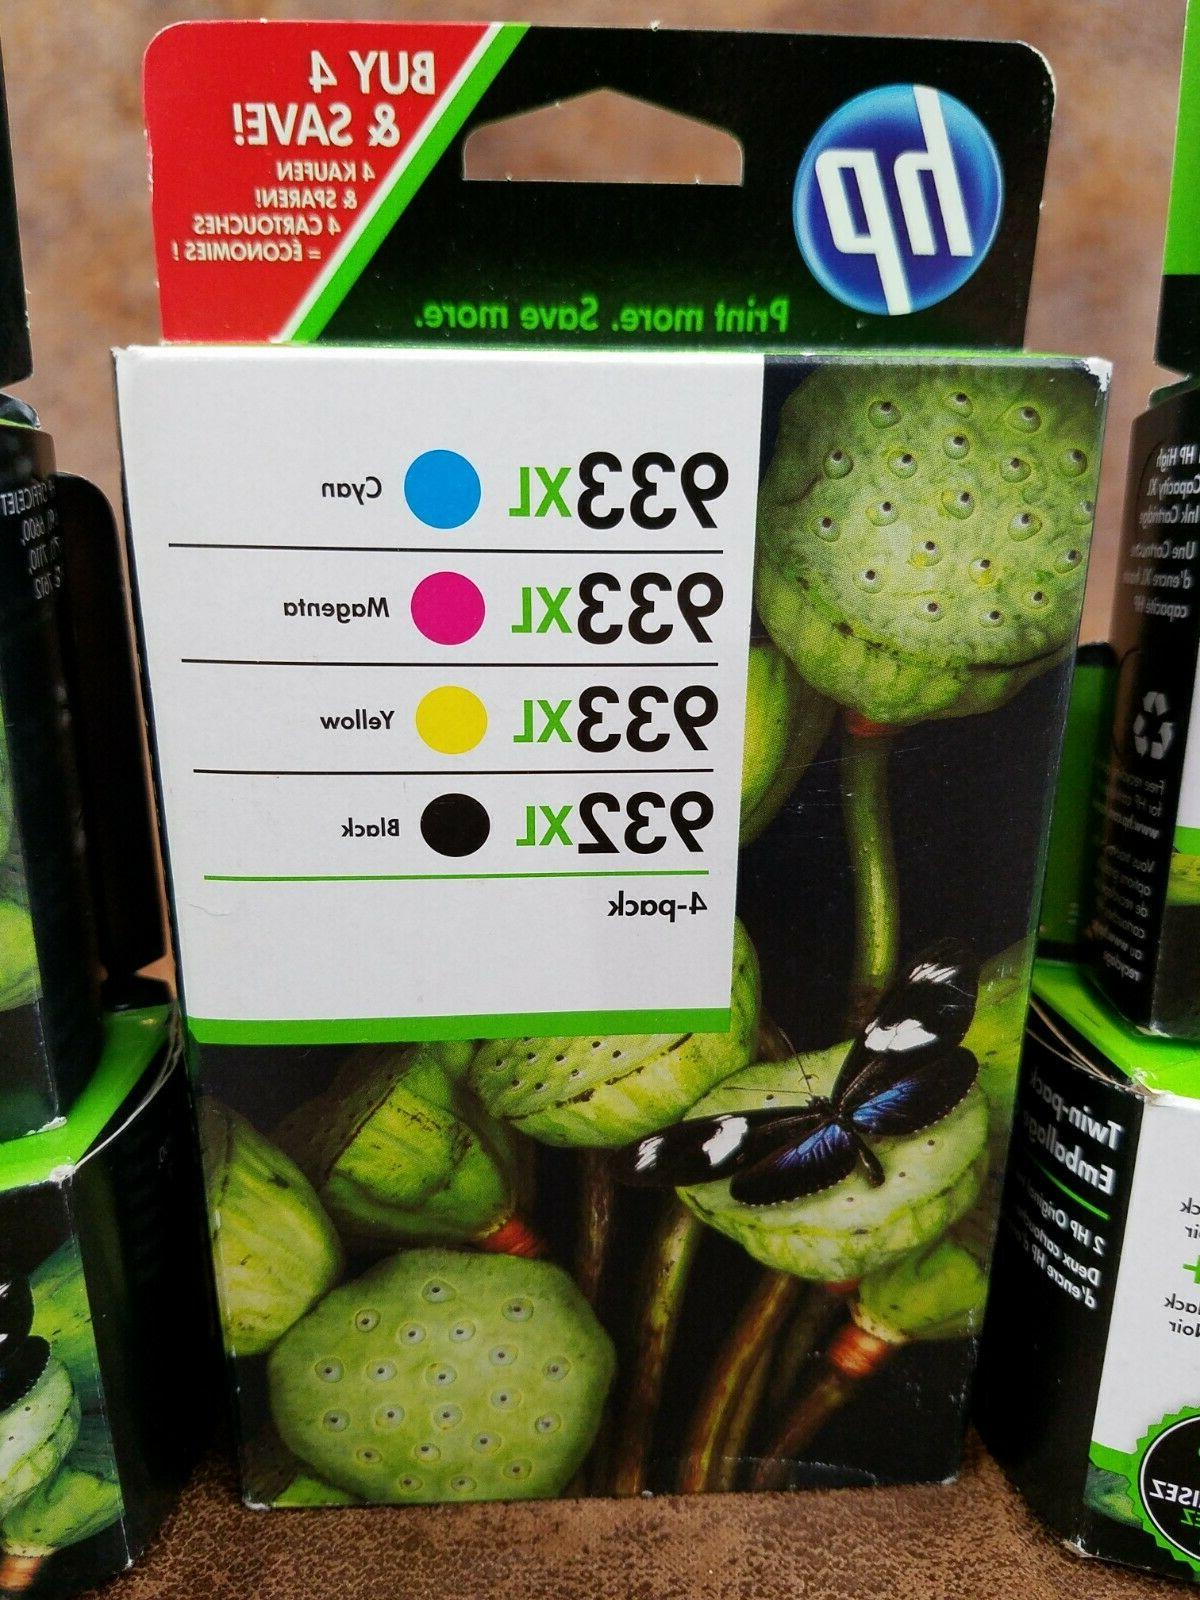 New HP Ink for 932 Cartridges